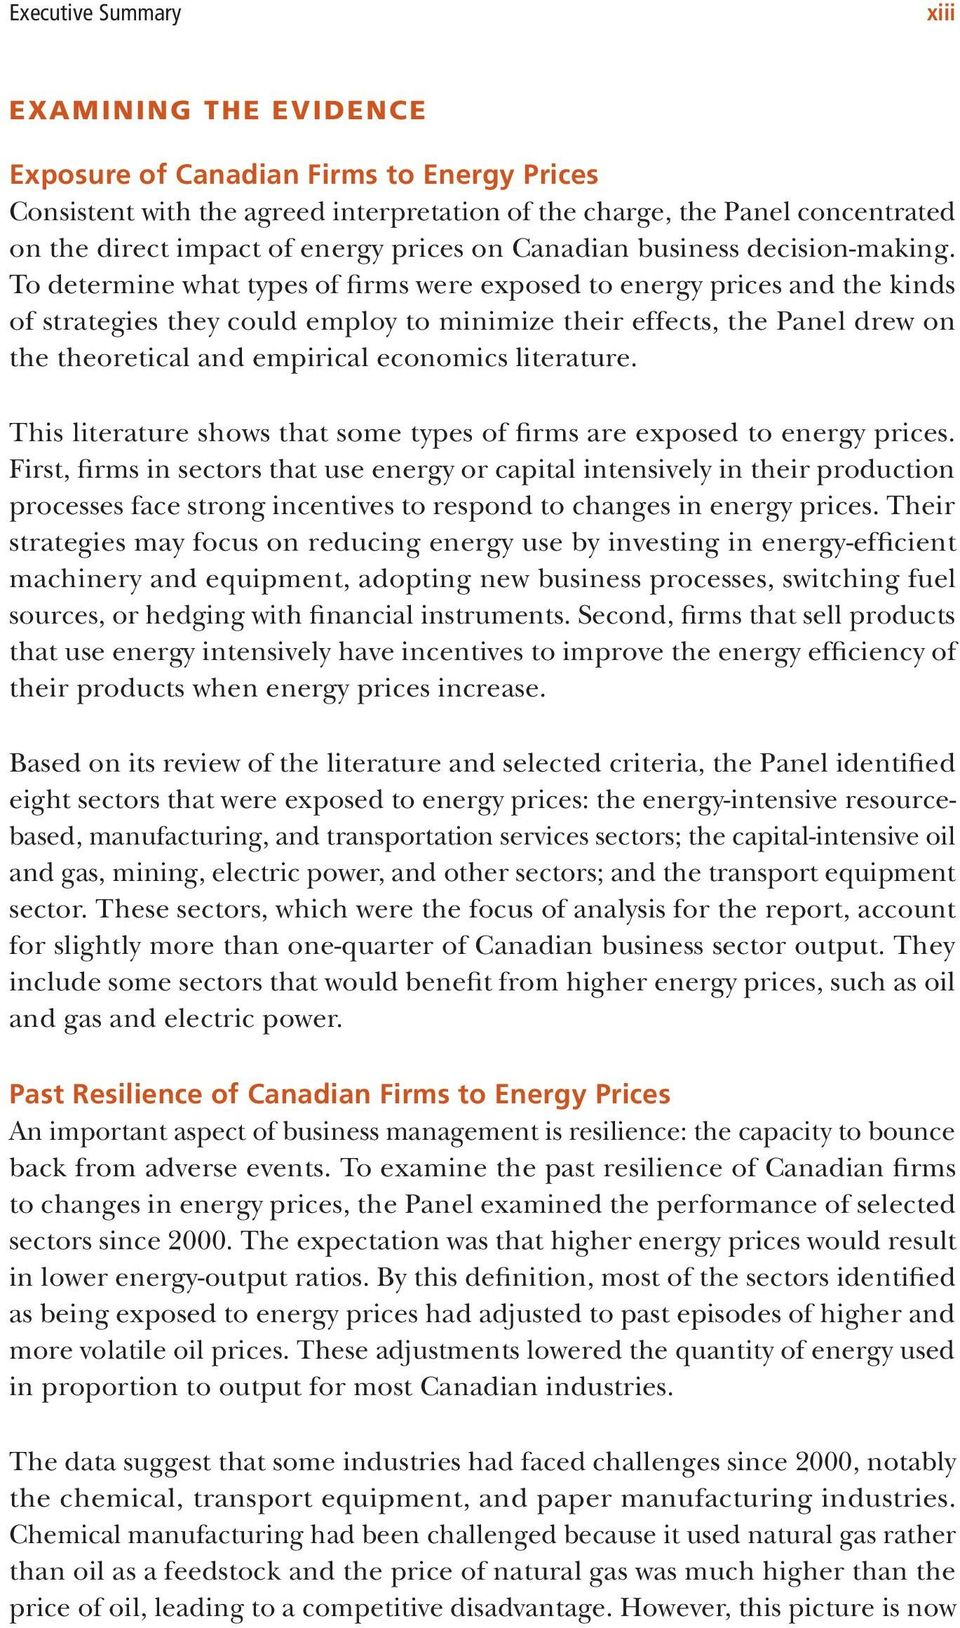 To determine what types of firms were exposed to energy prices and the kinds of strategies they could employ to minimize their effects, the Panel drew on the theoretical and empirical economics